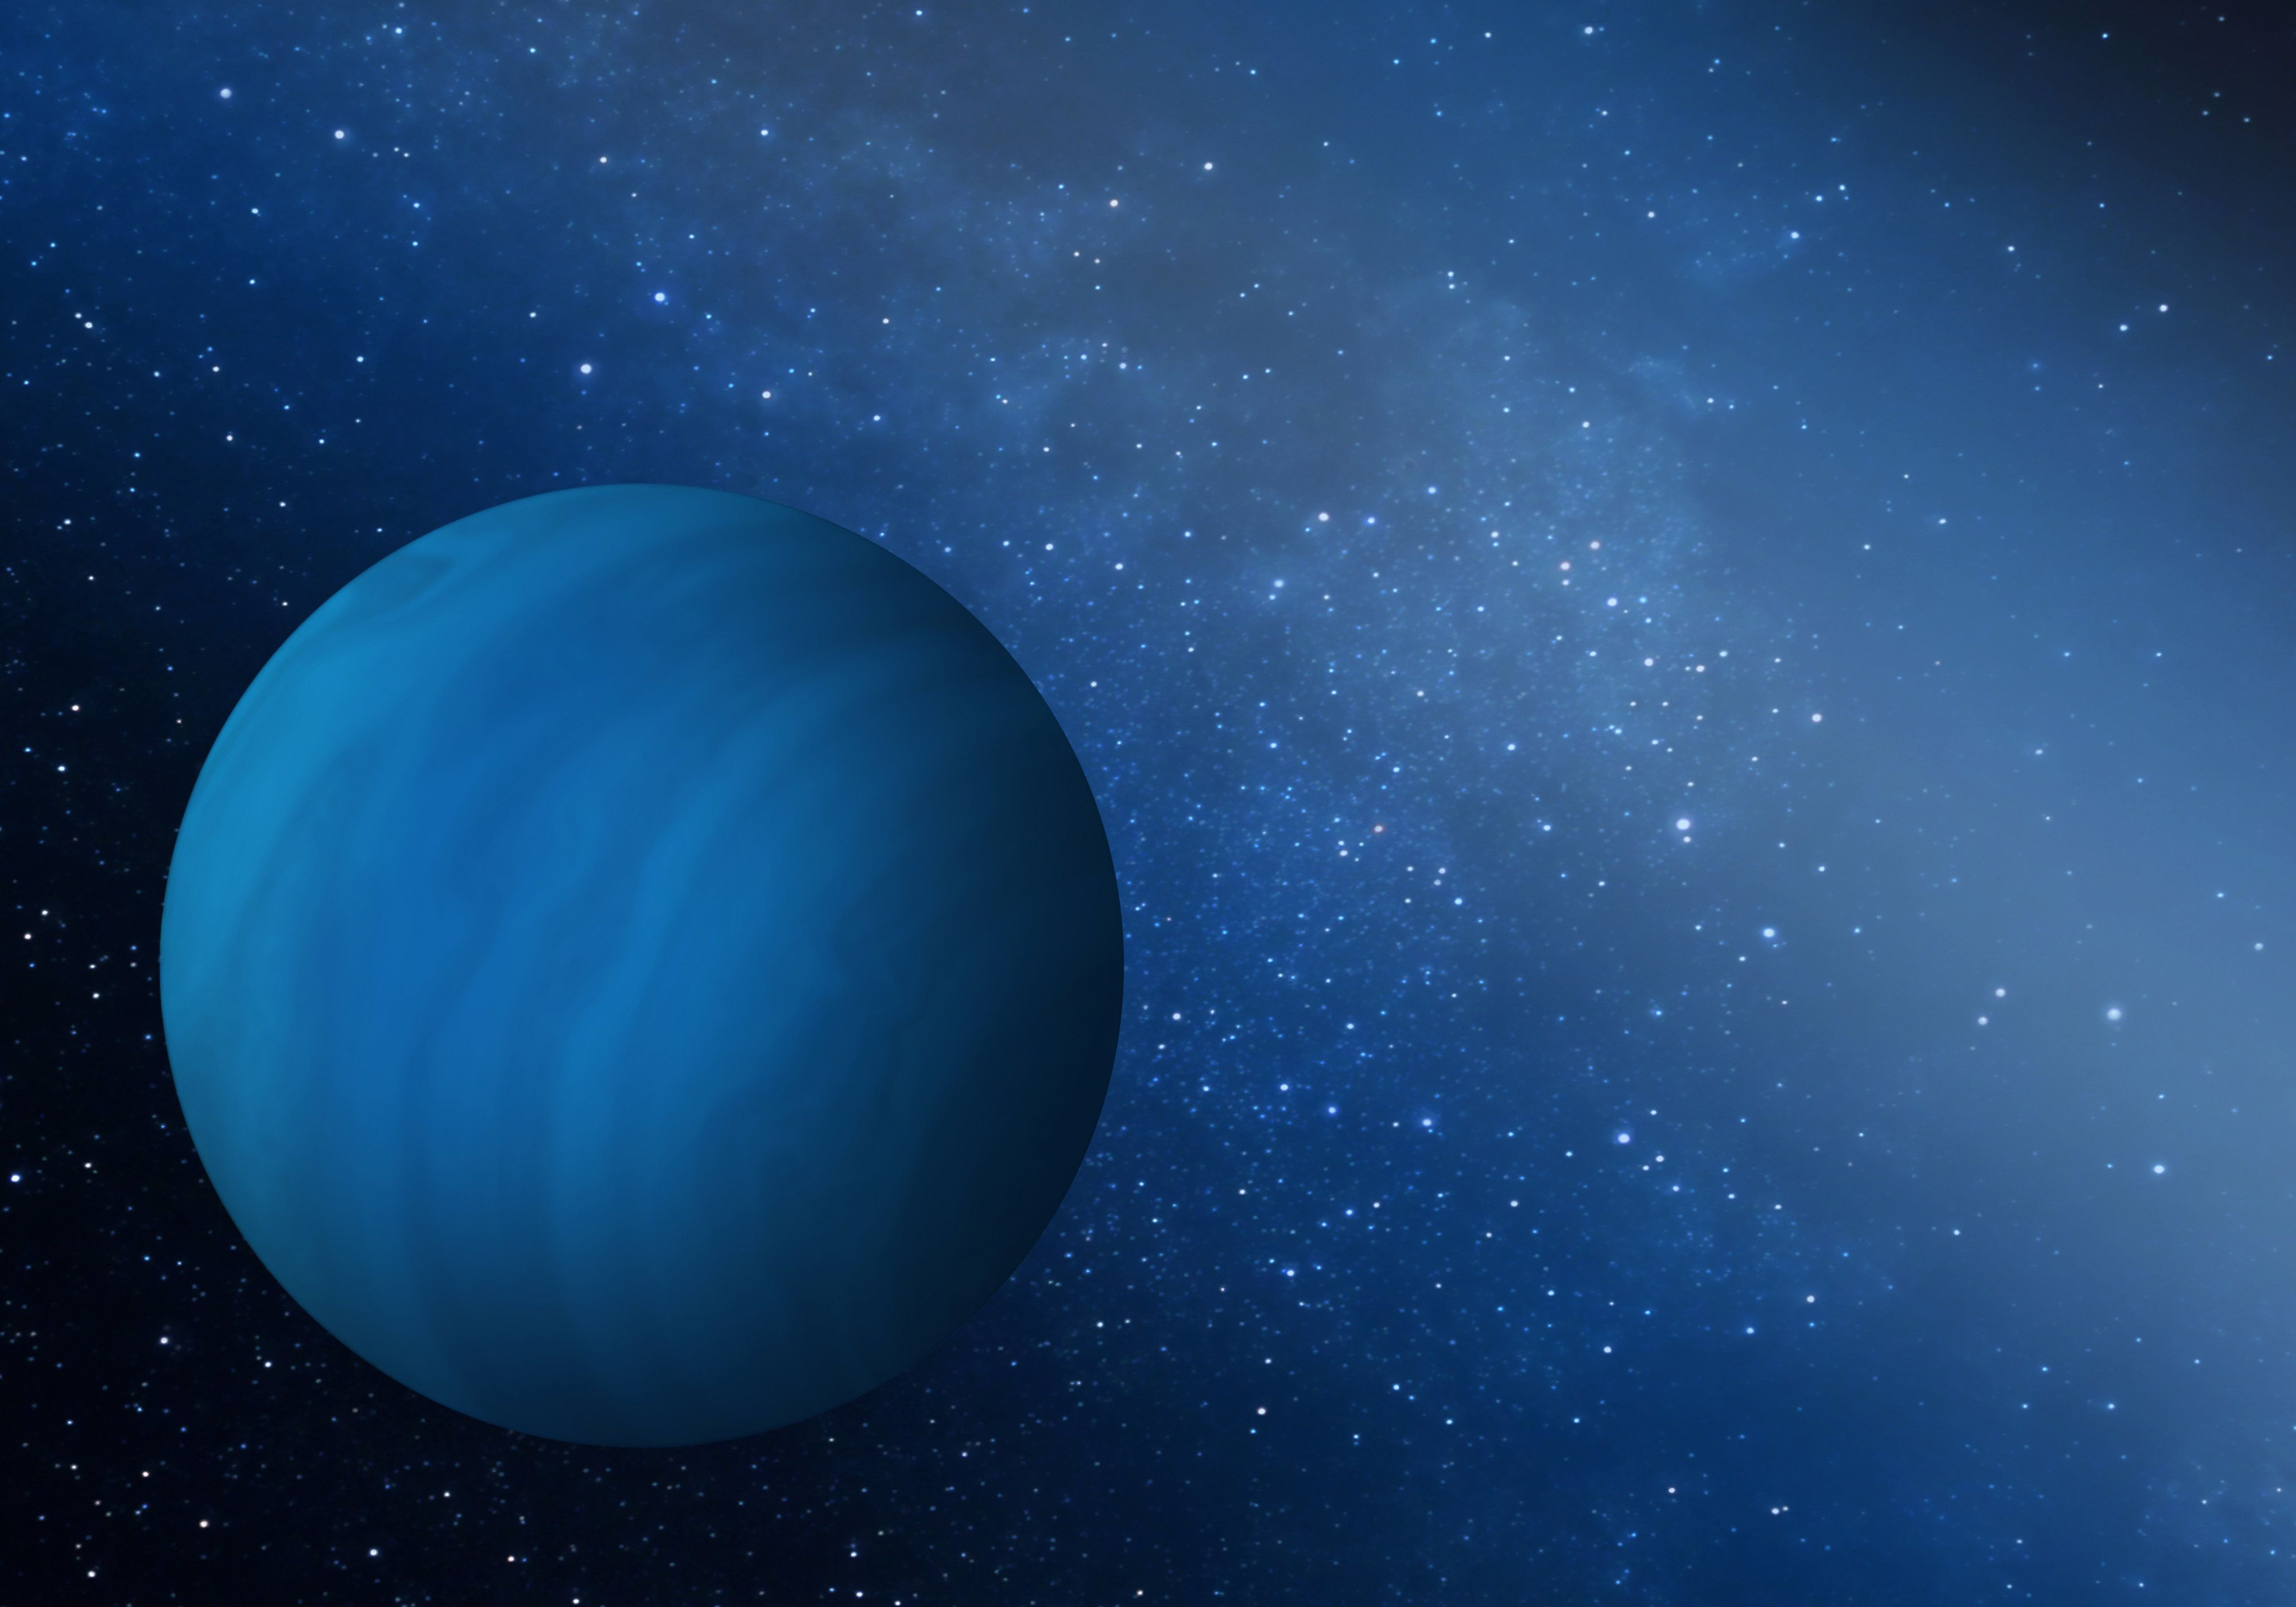 "<p><span style=""font-family: Arial, Helvetica, sans-serif; font-size: 14px; line-height: 20px; background-color: #eeeeee;"">Artist's impression of the missing gas giant planet that may have been ejected from the early solar system. </span></p>"